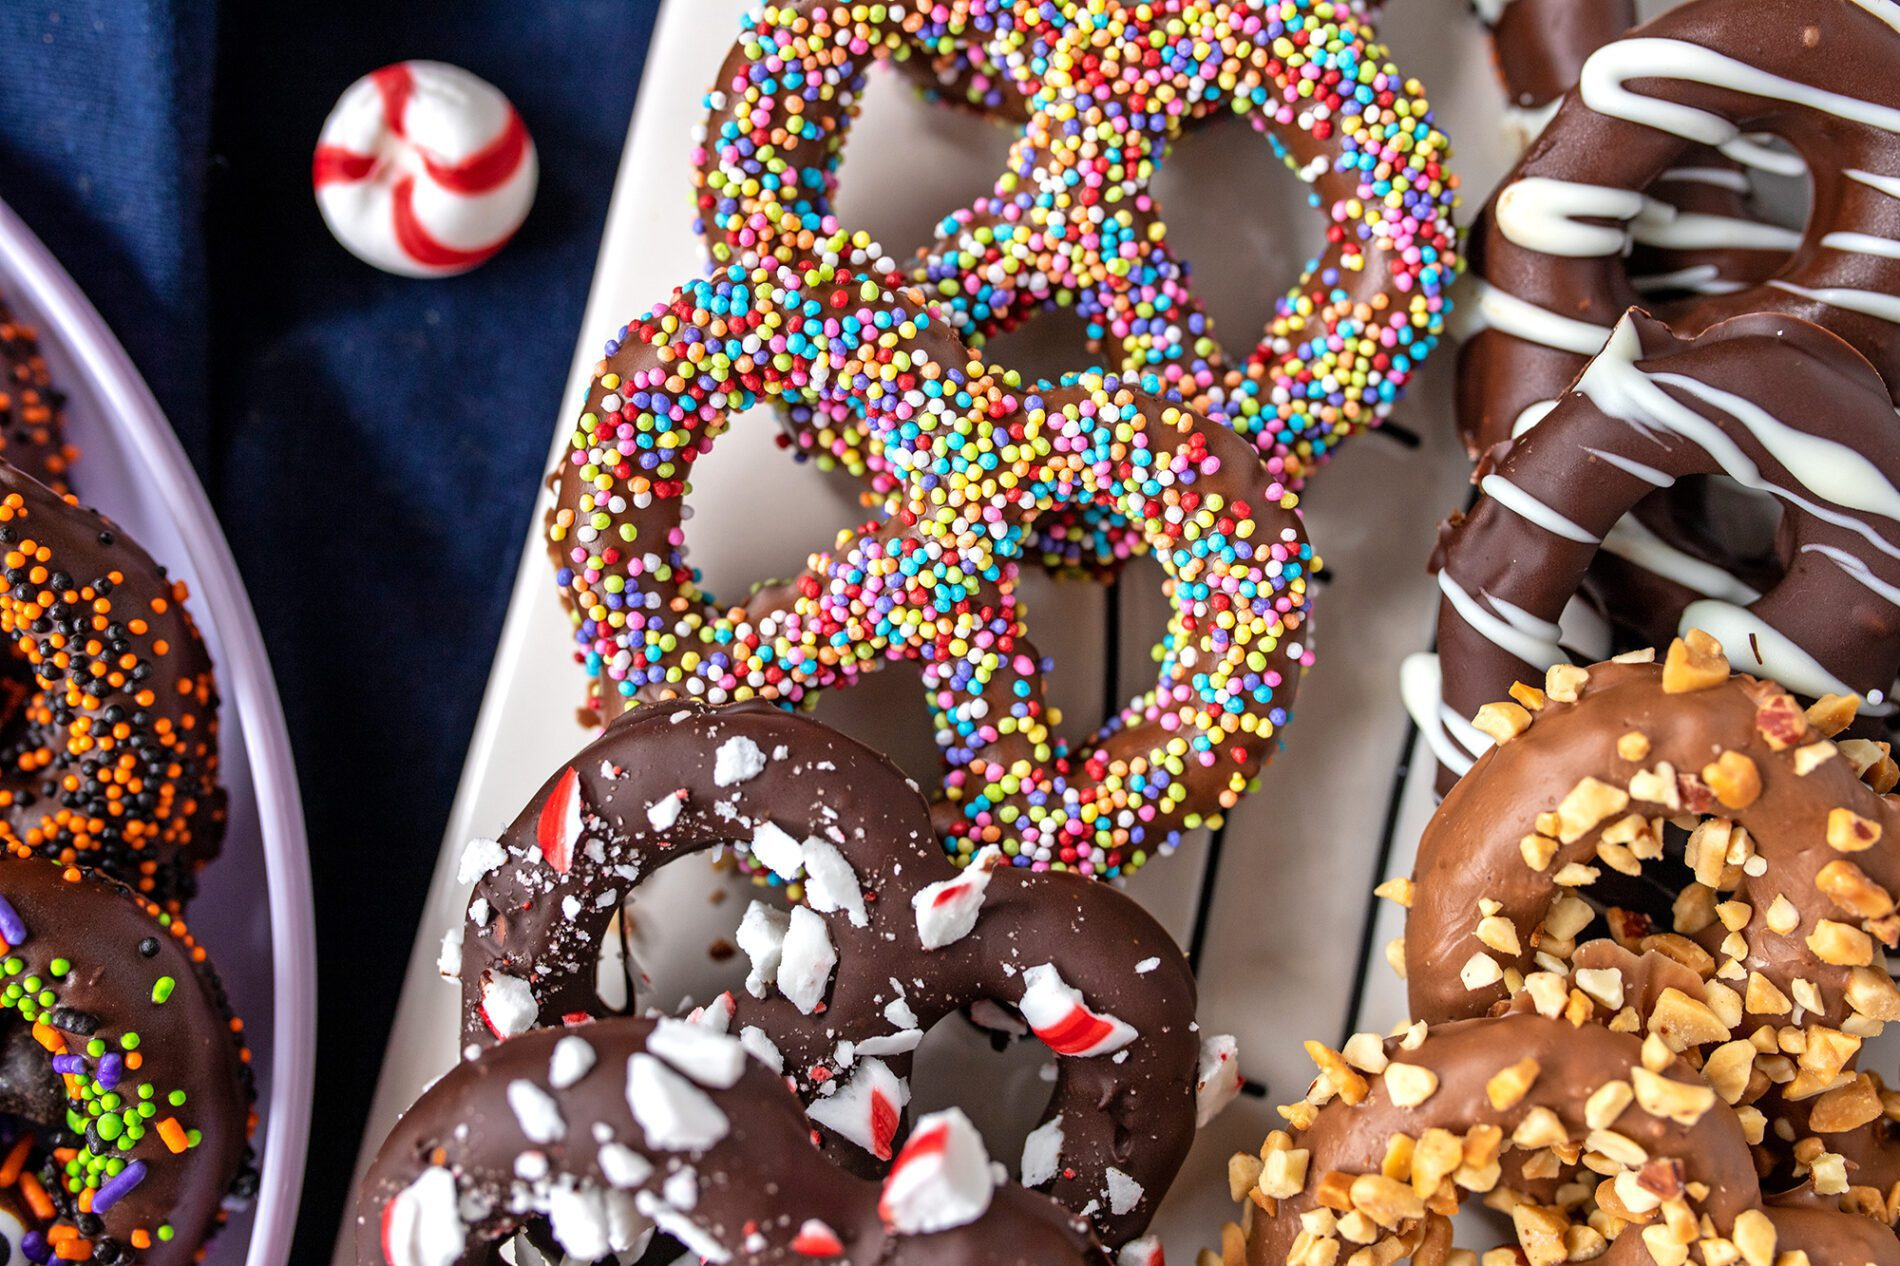 plate of chocolate covered pretzels